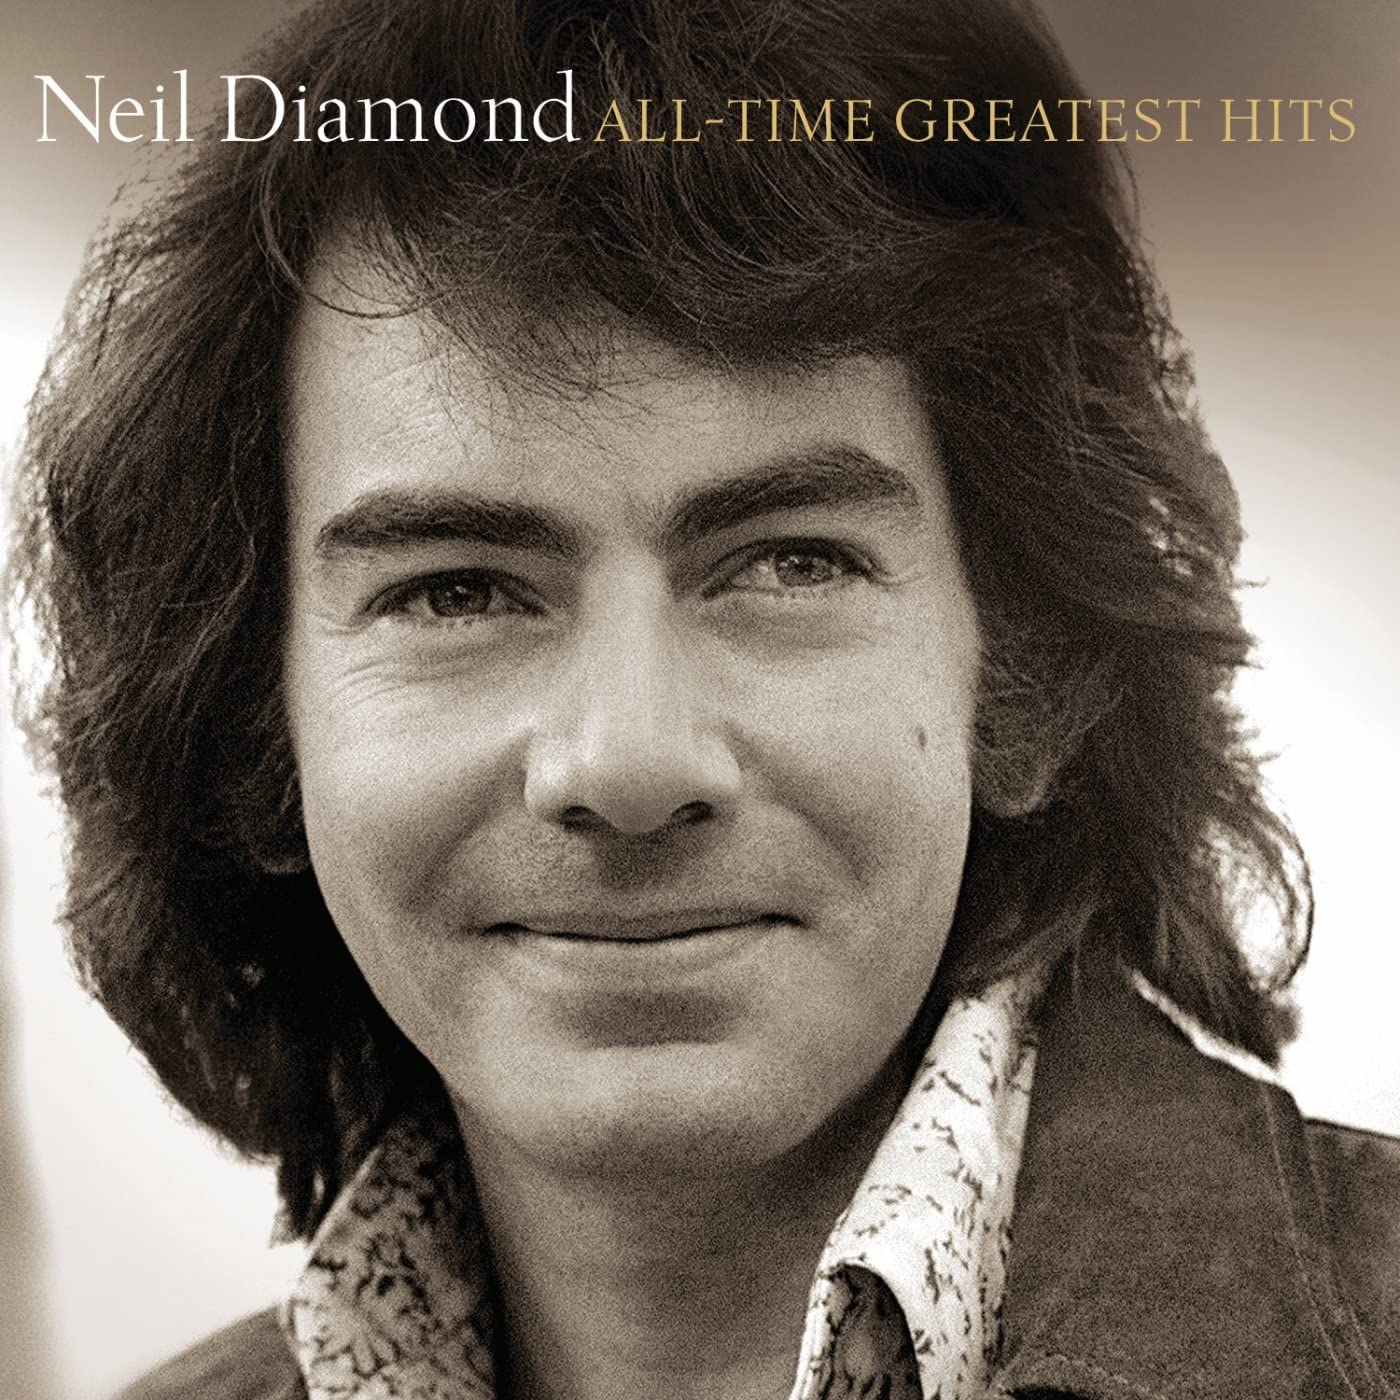 Diamond, Neil/All-Time Greatest Hits [CD]